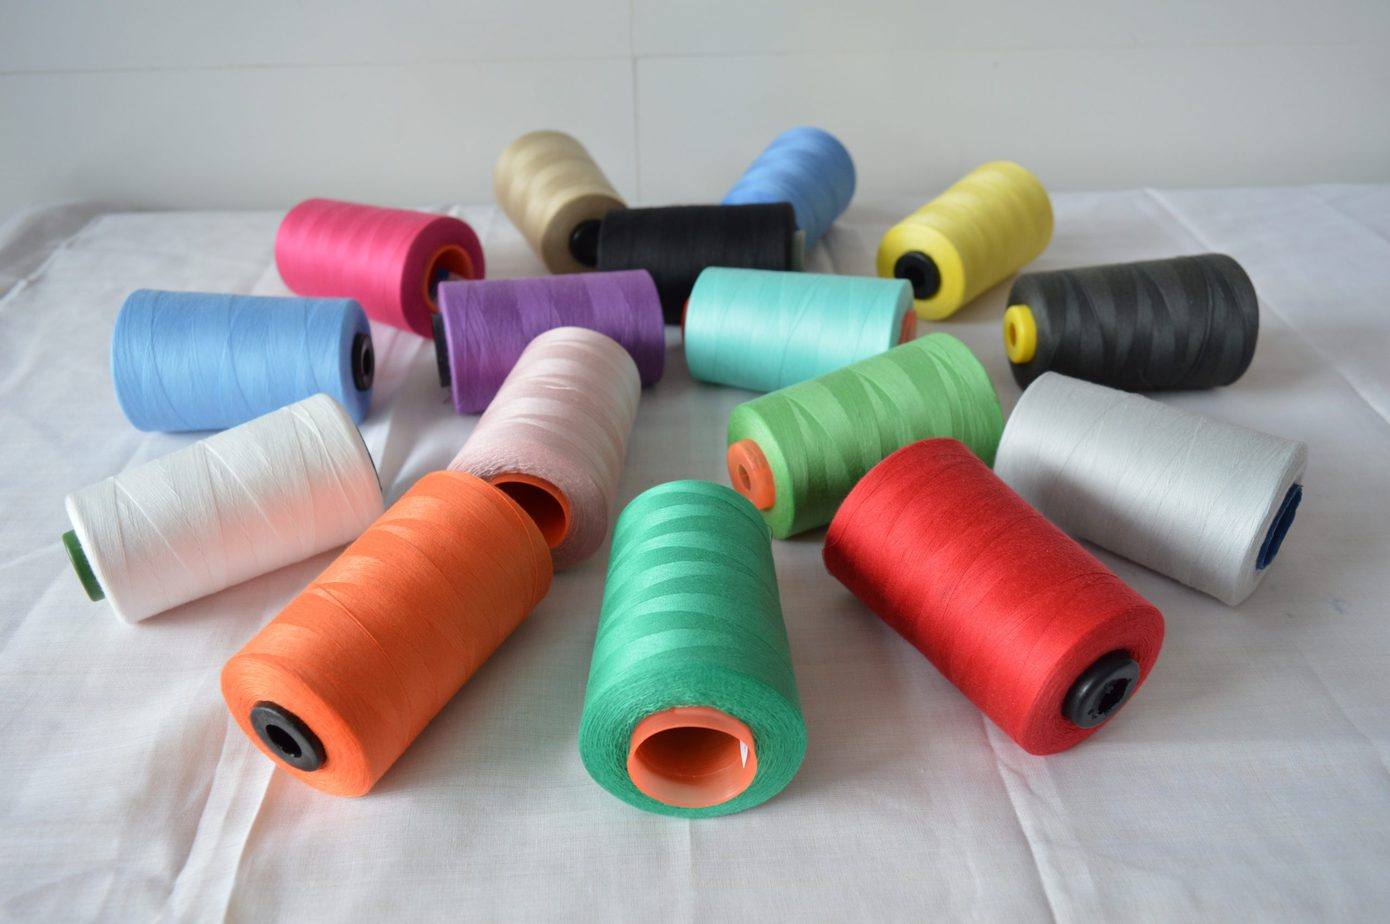 Vinh Hung's sewing thread type 50/2